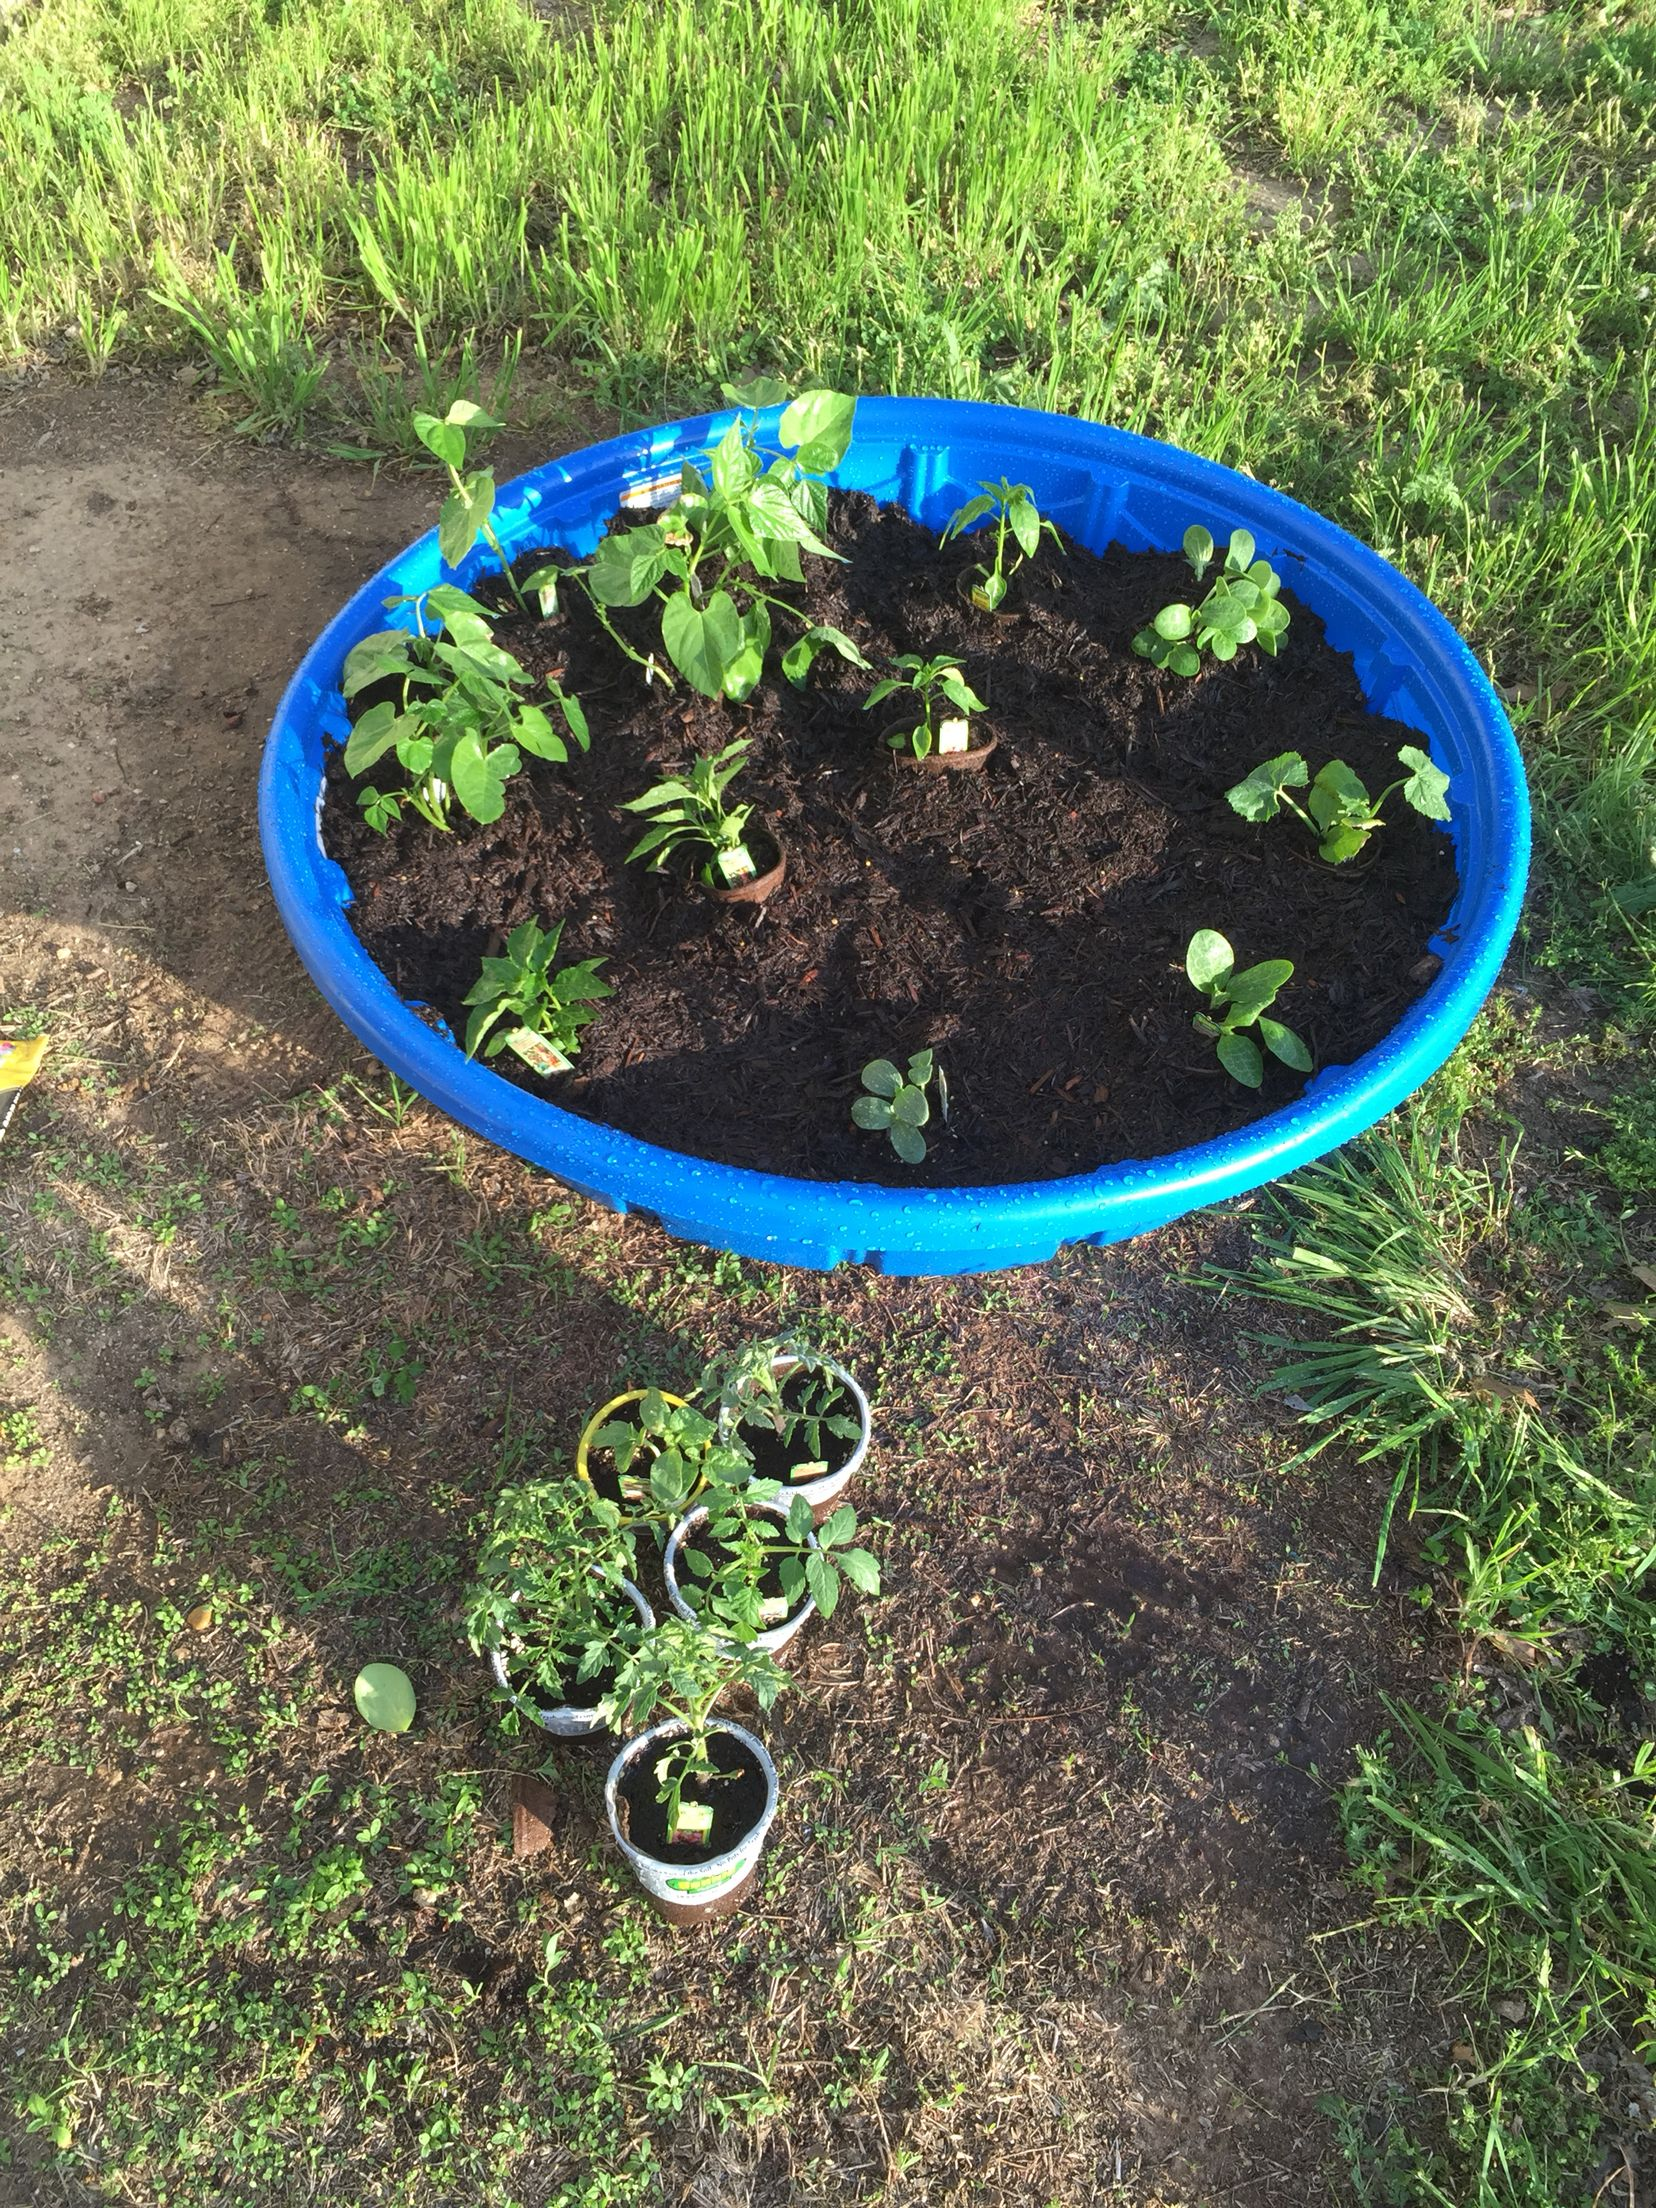 cheap garden idea!! kiddie pool vegetable garden. drill holes in the